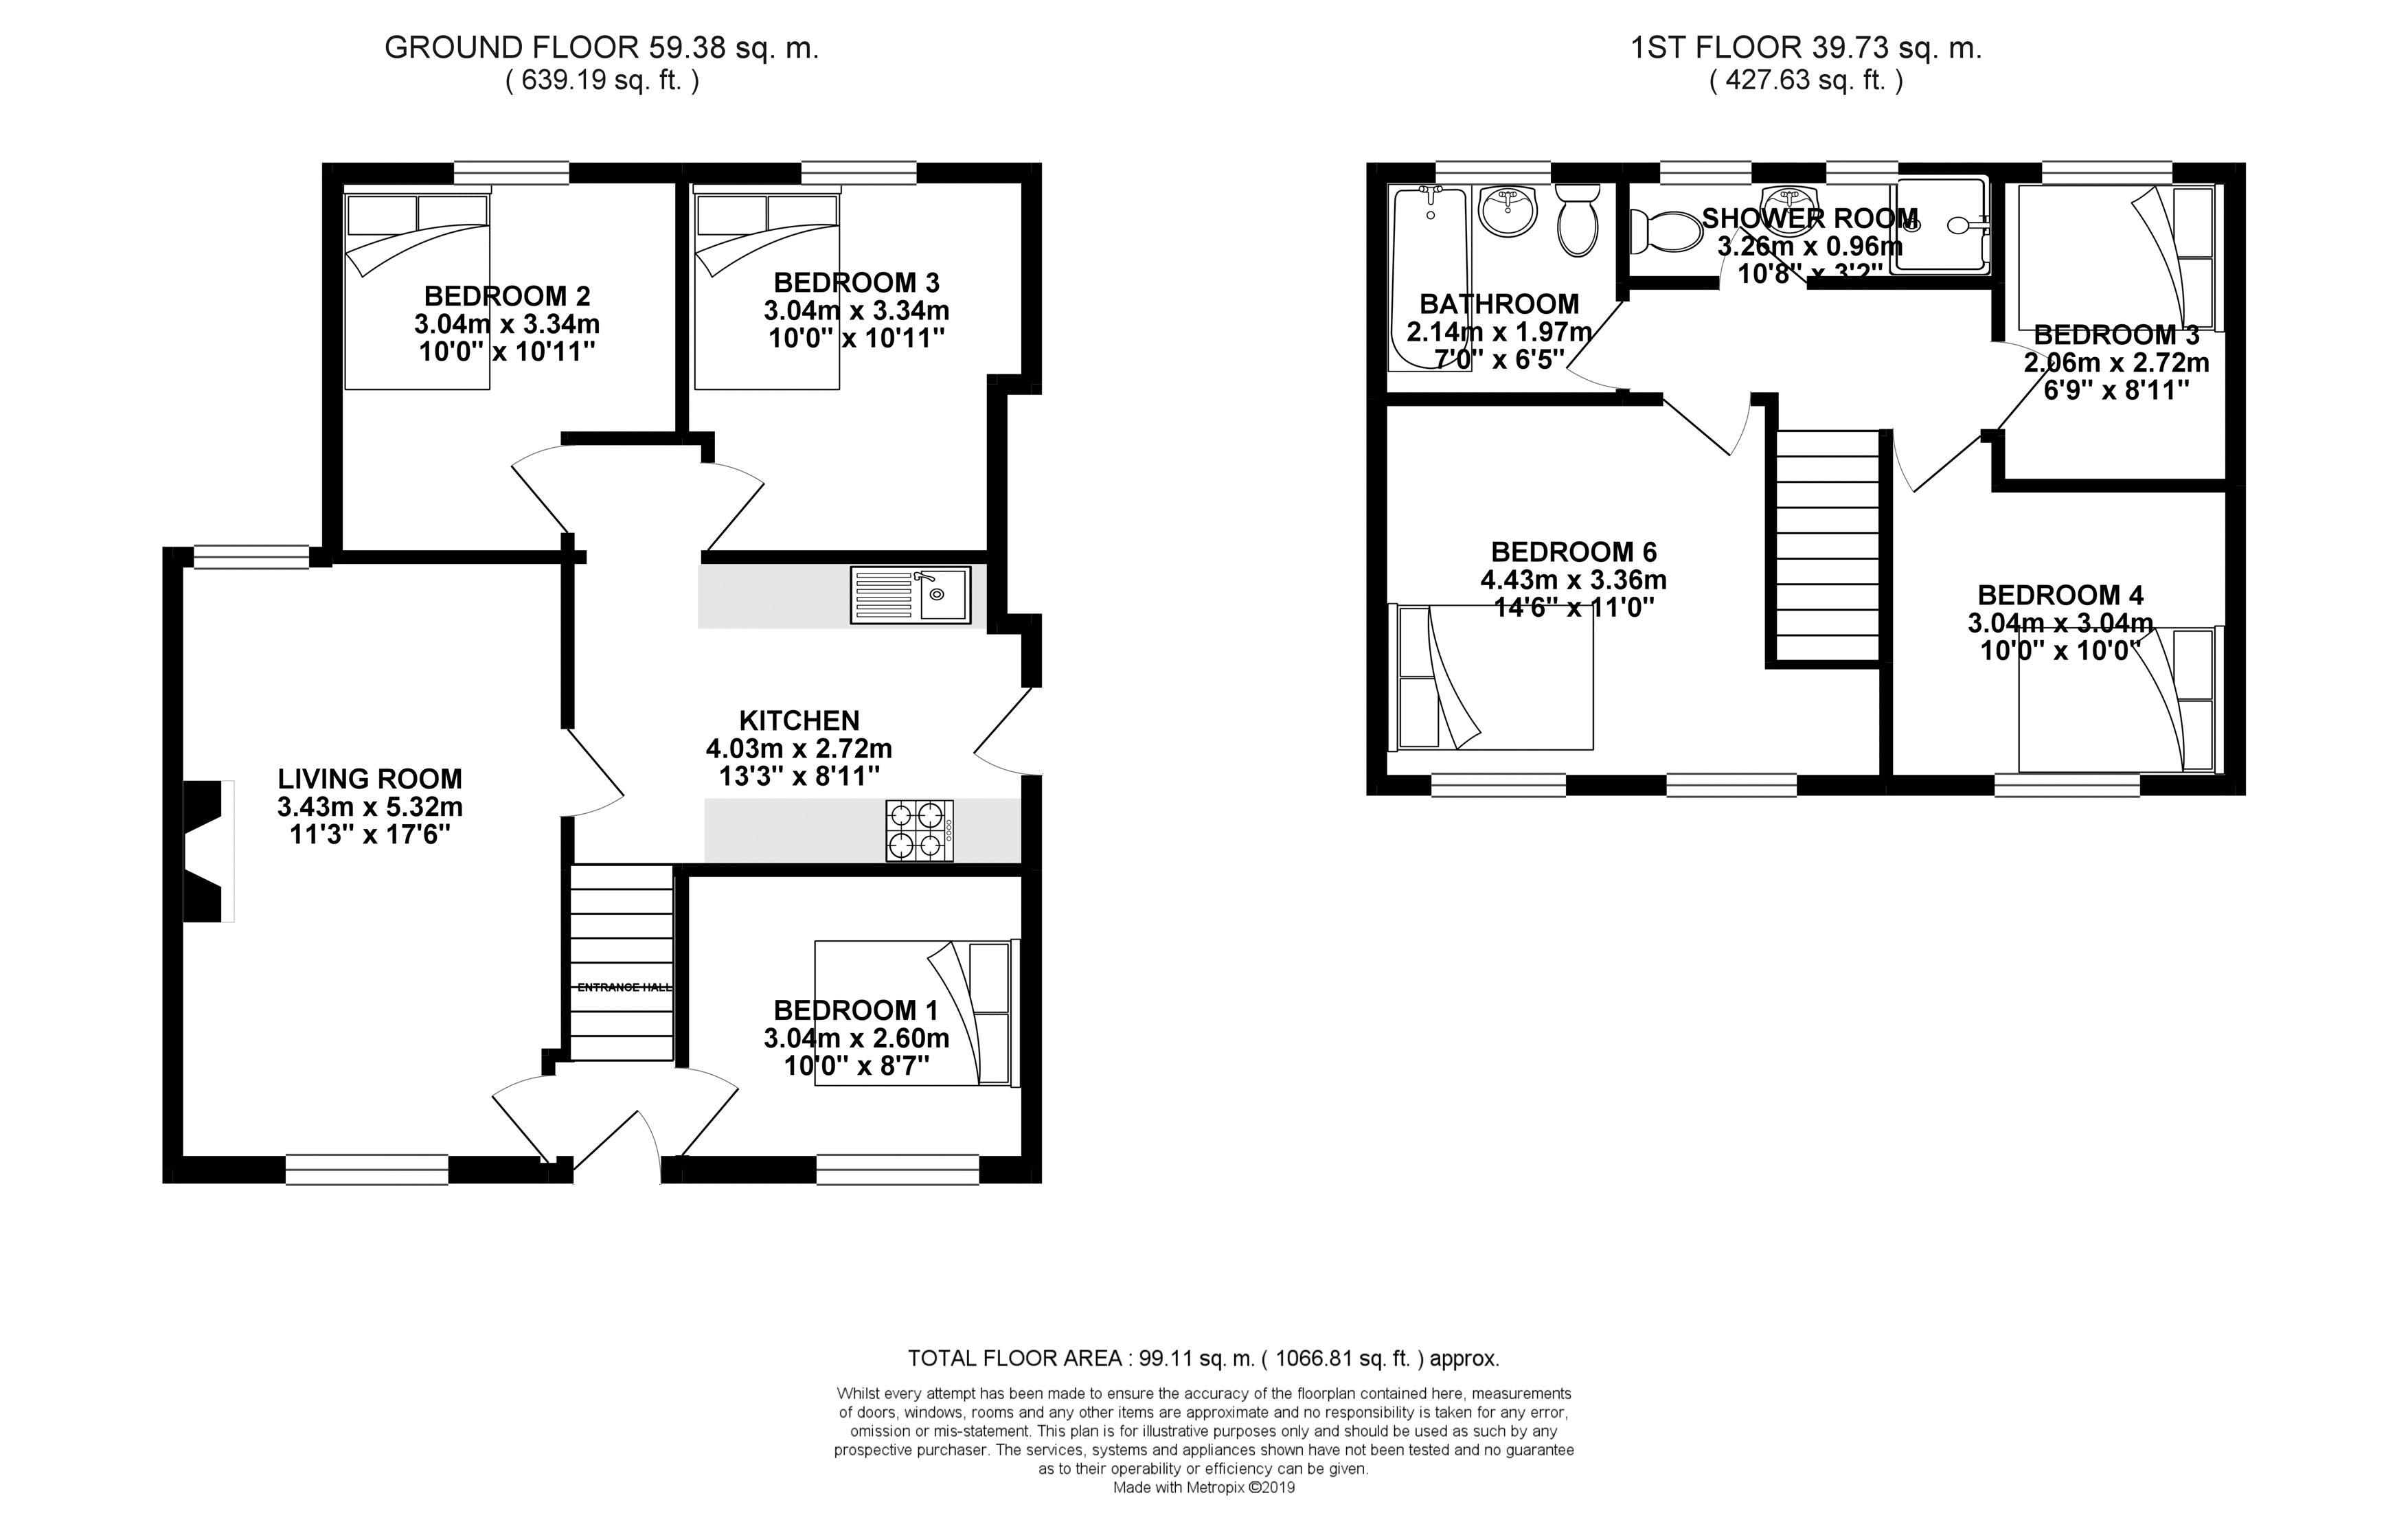 Floor plans for Southall Avenue, Brighton property for sale in Lewes Road North, Brighton by Coapt